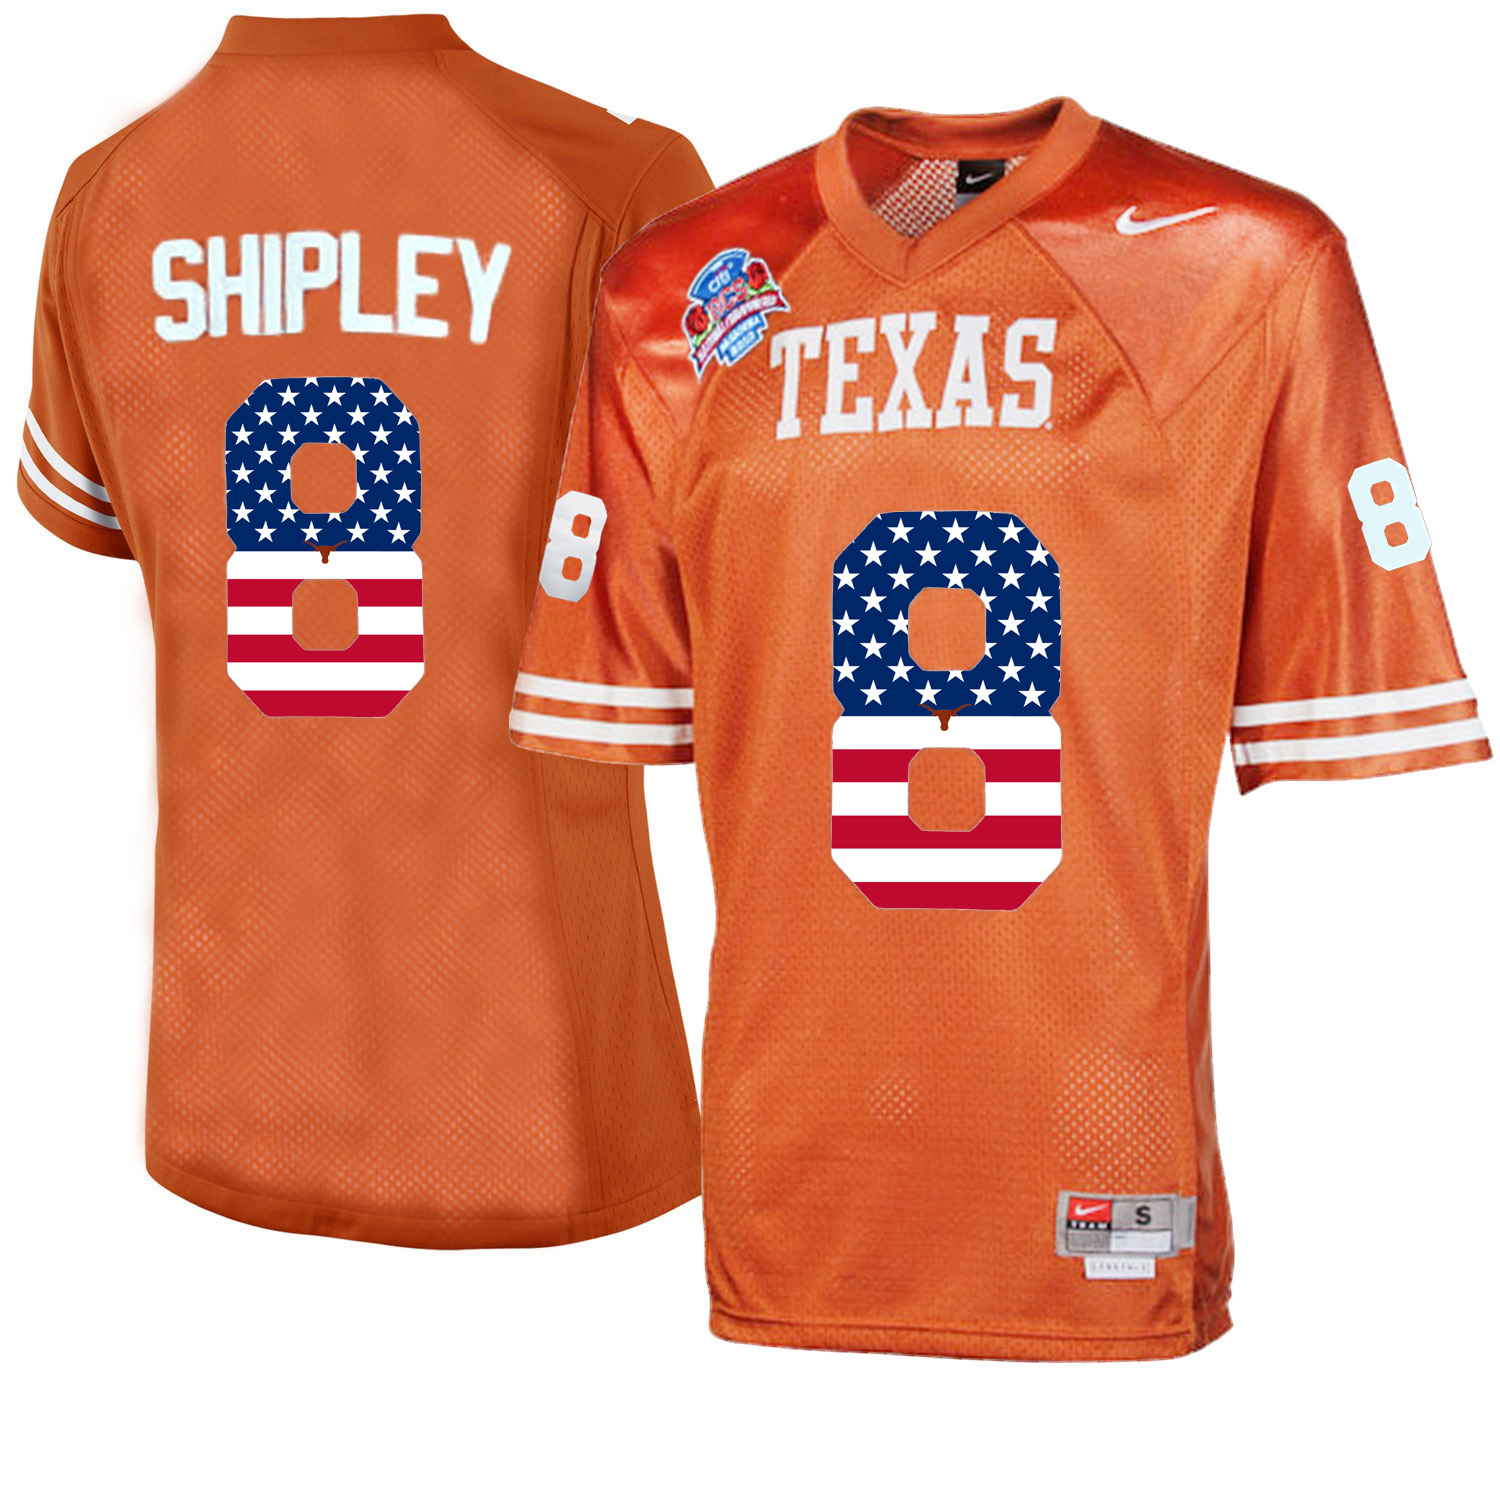 Texas Longhorns 8 Jordan Shipley Orange College Football Throwback Jersey